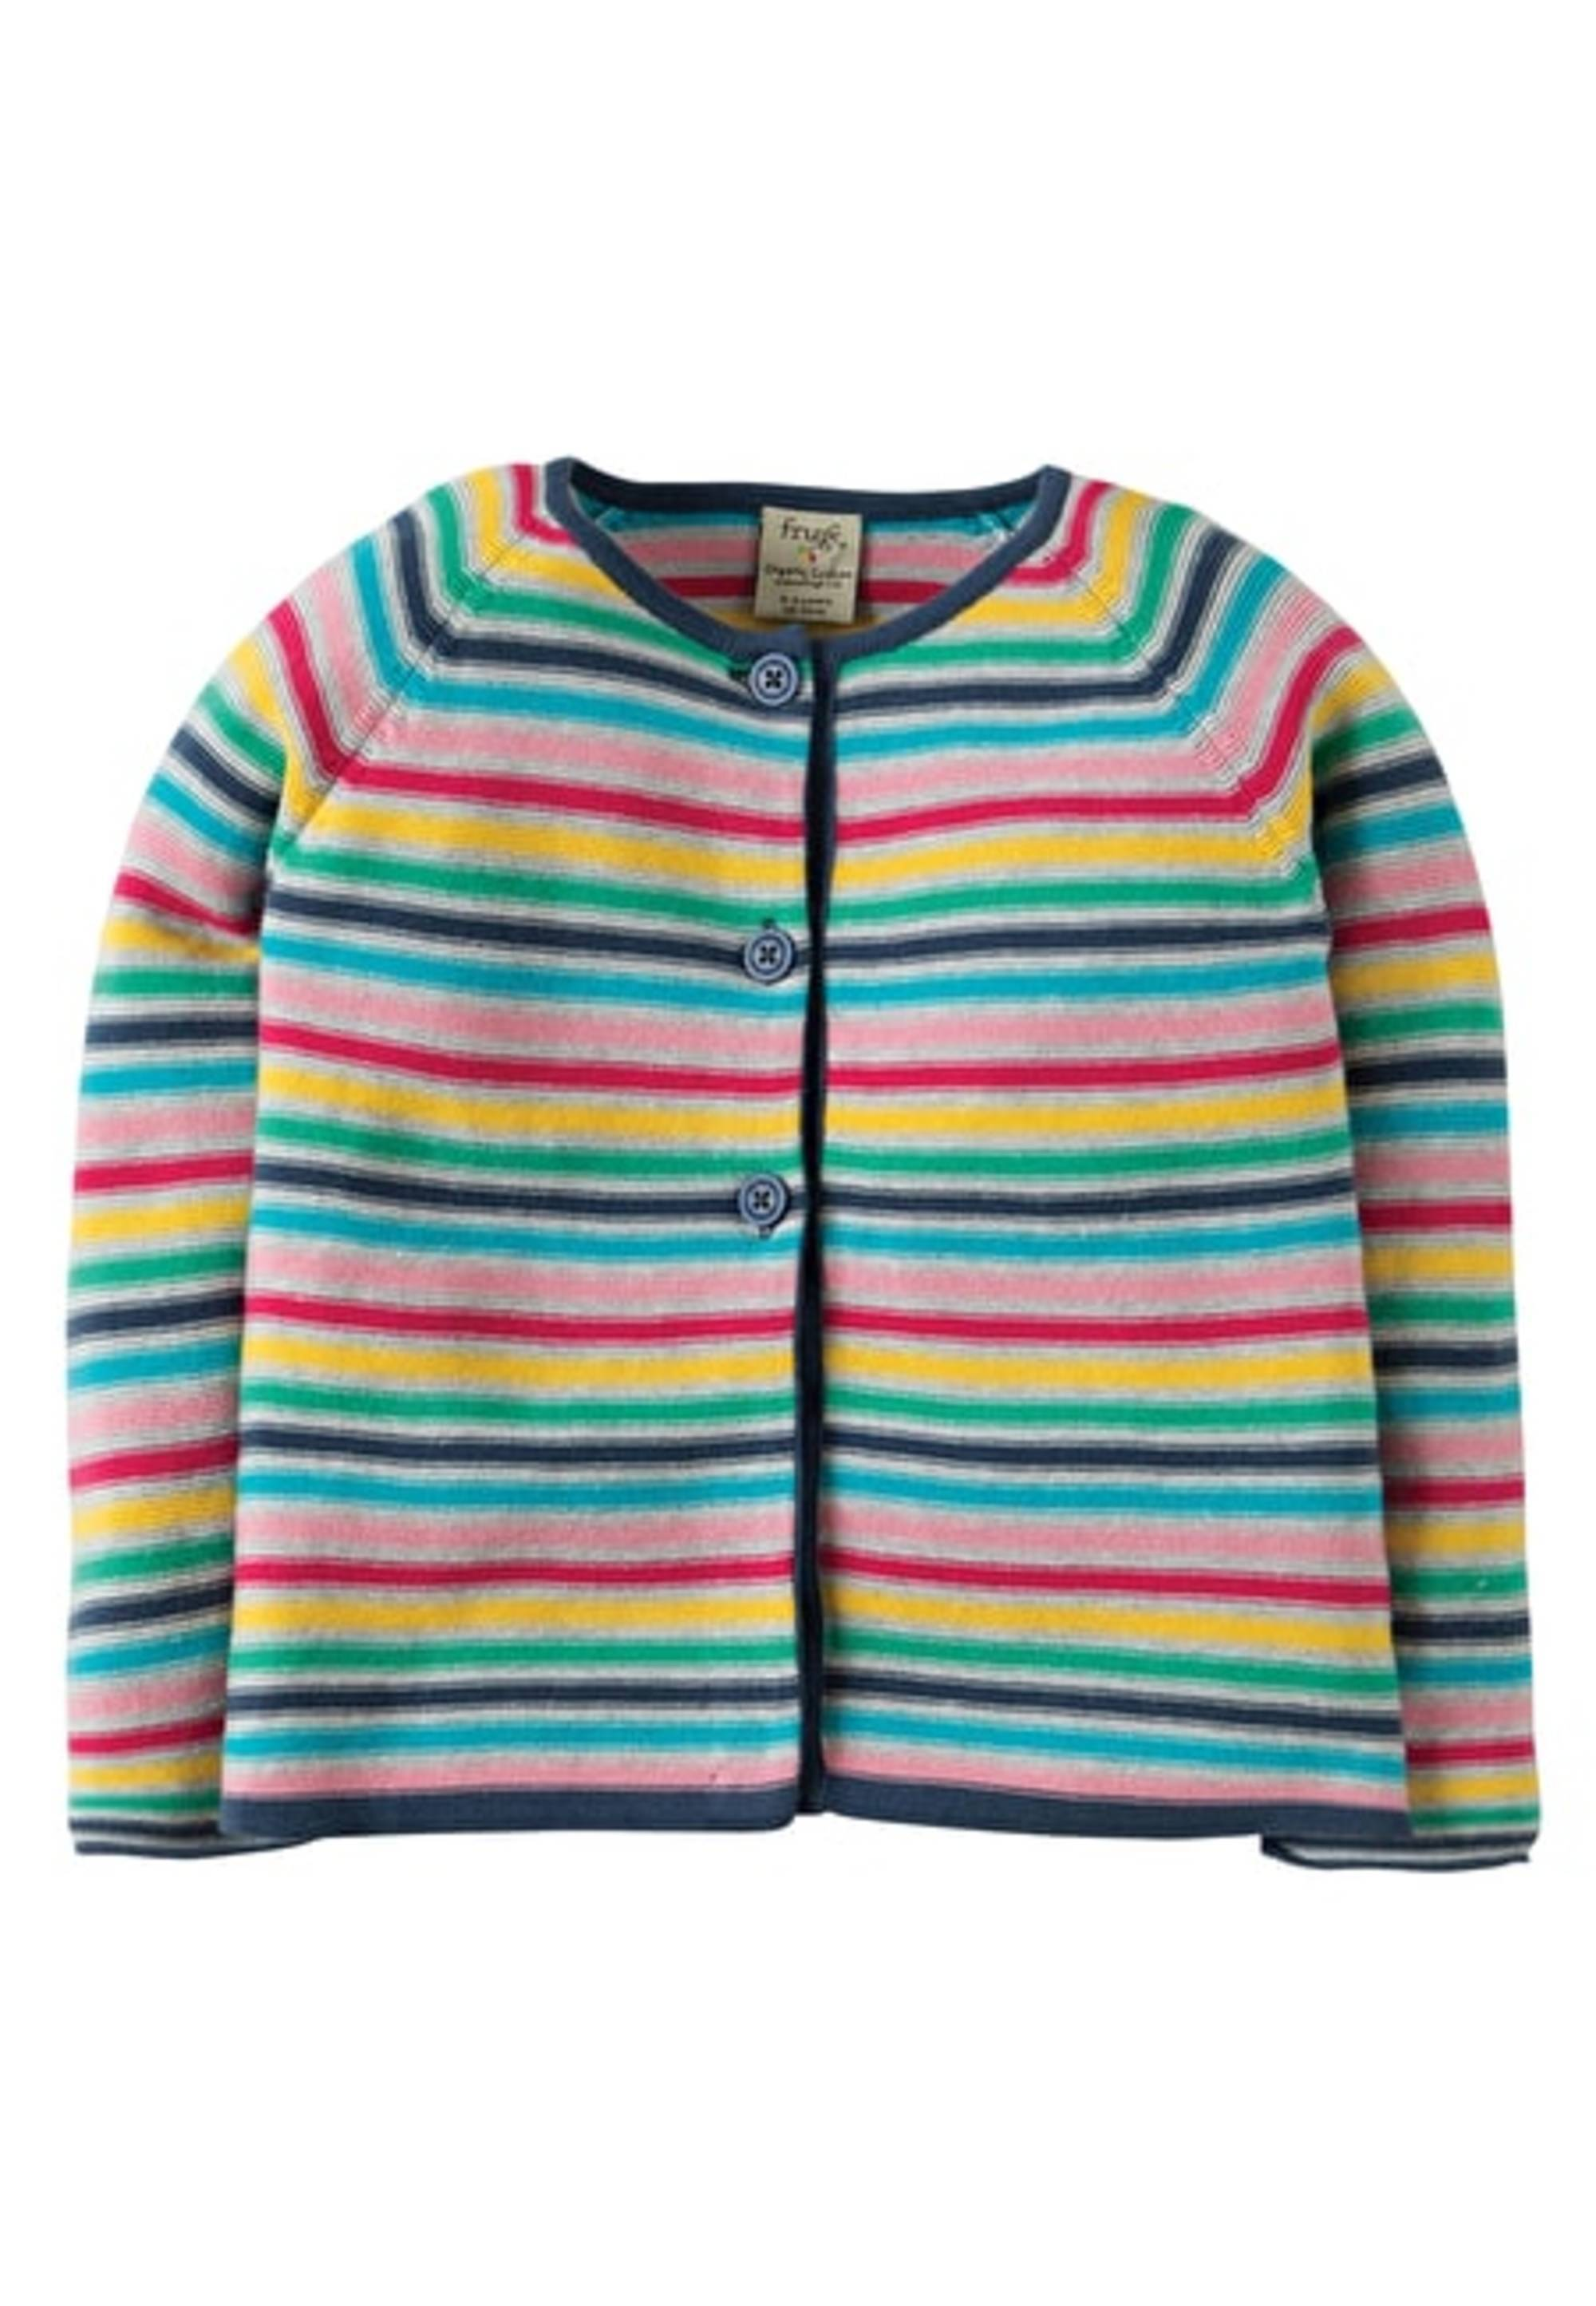 6bb0883a6 STORK Organic Baby Boutique - Girls Clothing